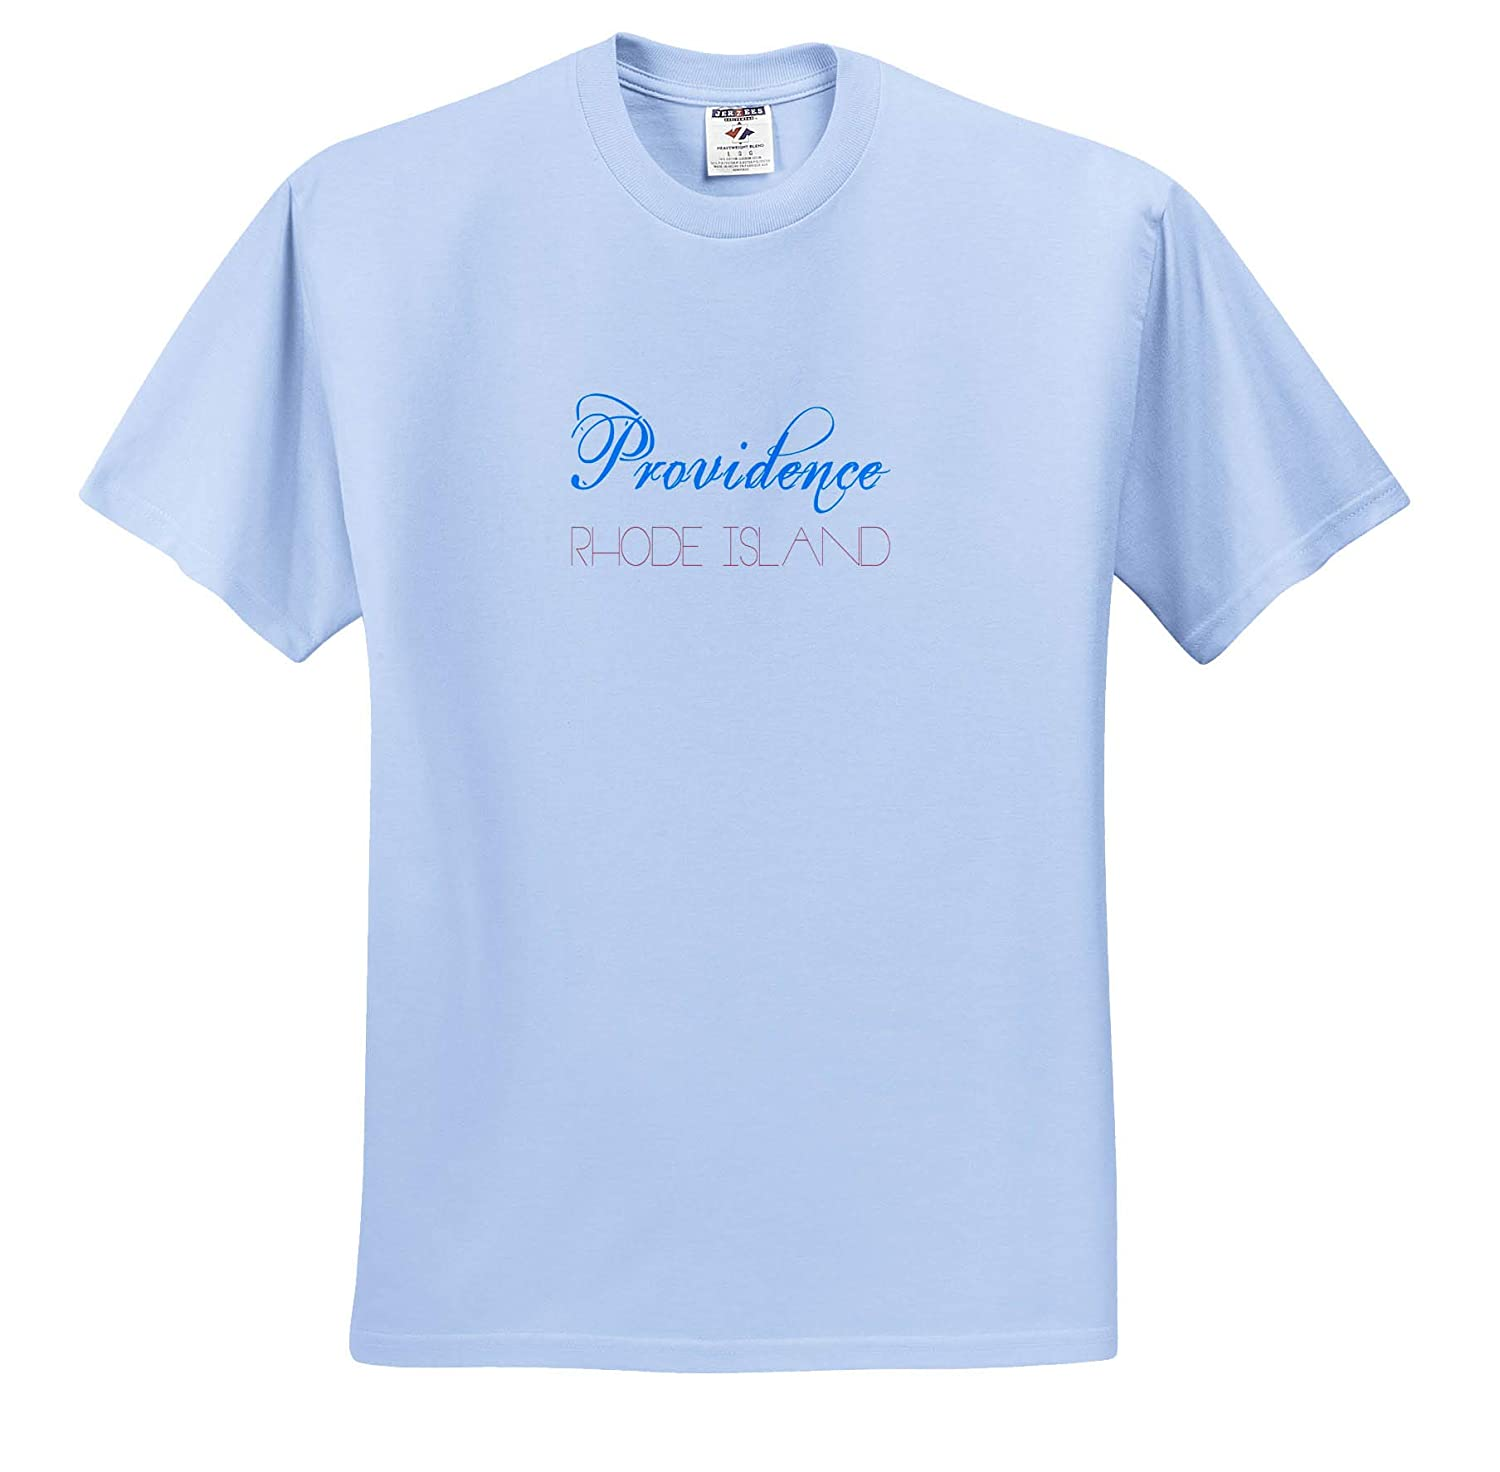 American Cities Providence T-Shirts 3dRose Alexis Design Rhode Island Blue red Text on White